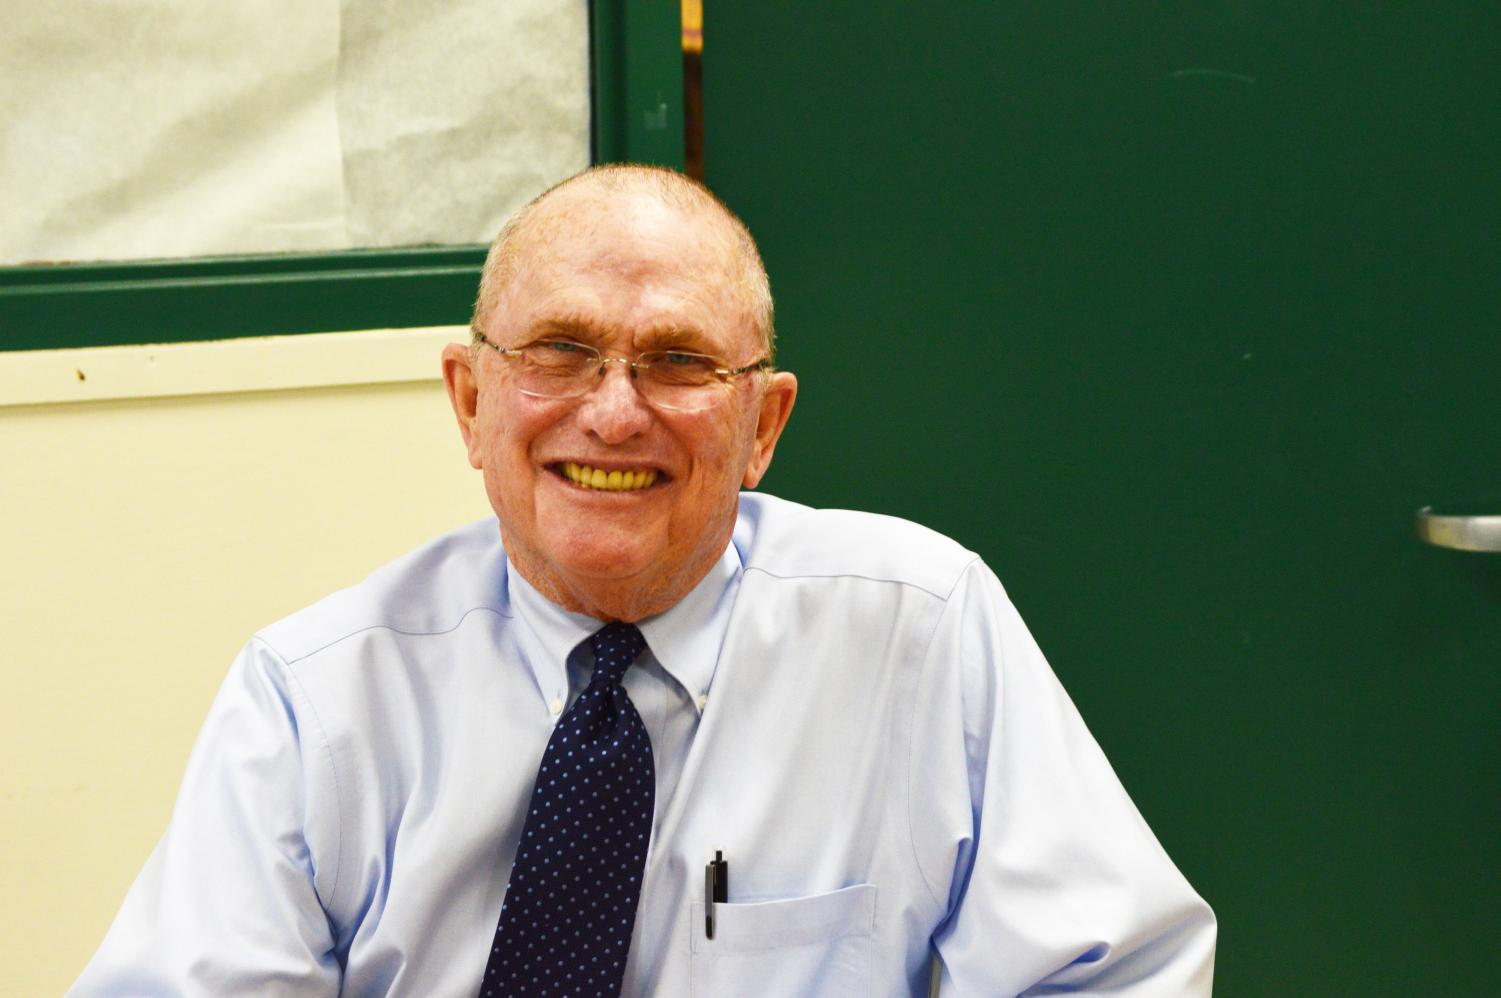 After teaching for 26 years, English teacher Howard Cooney is now retiring.